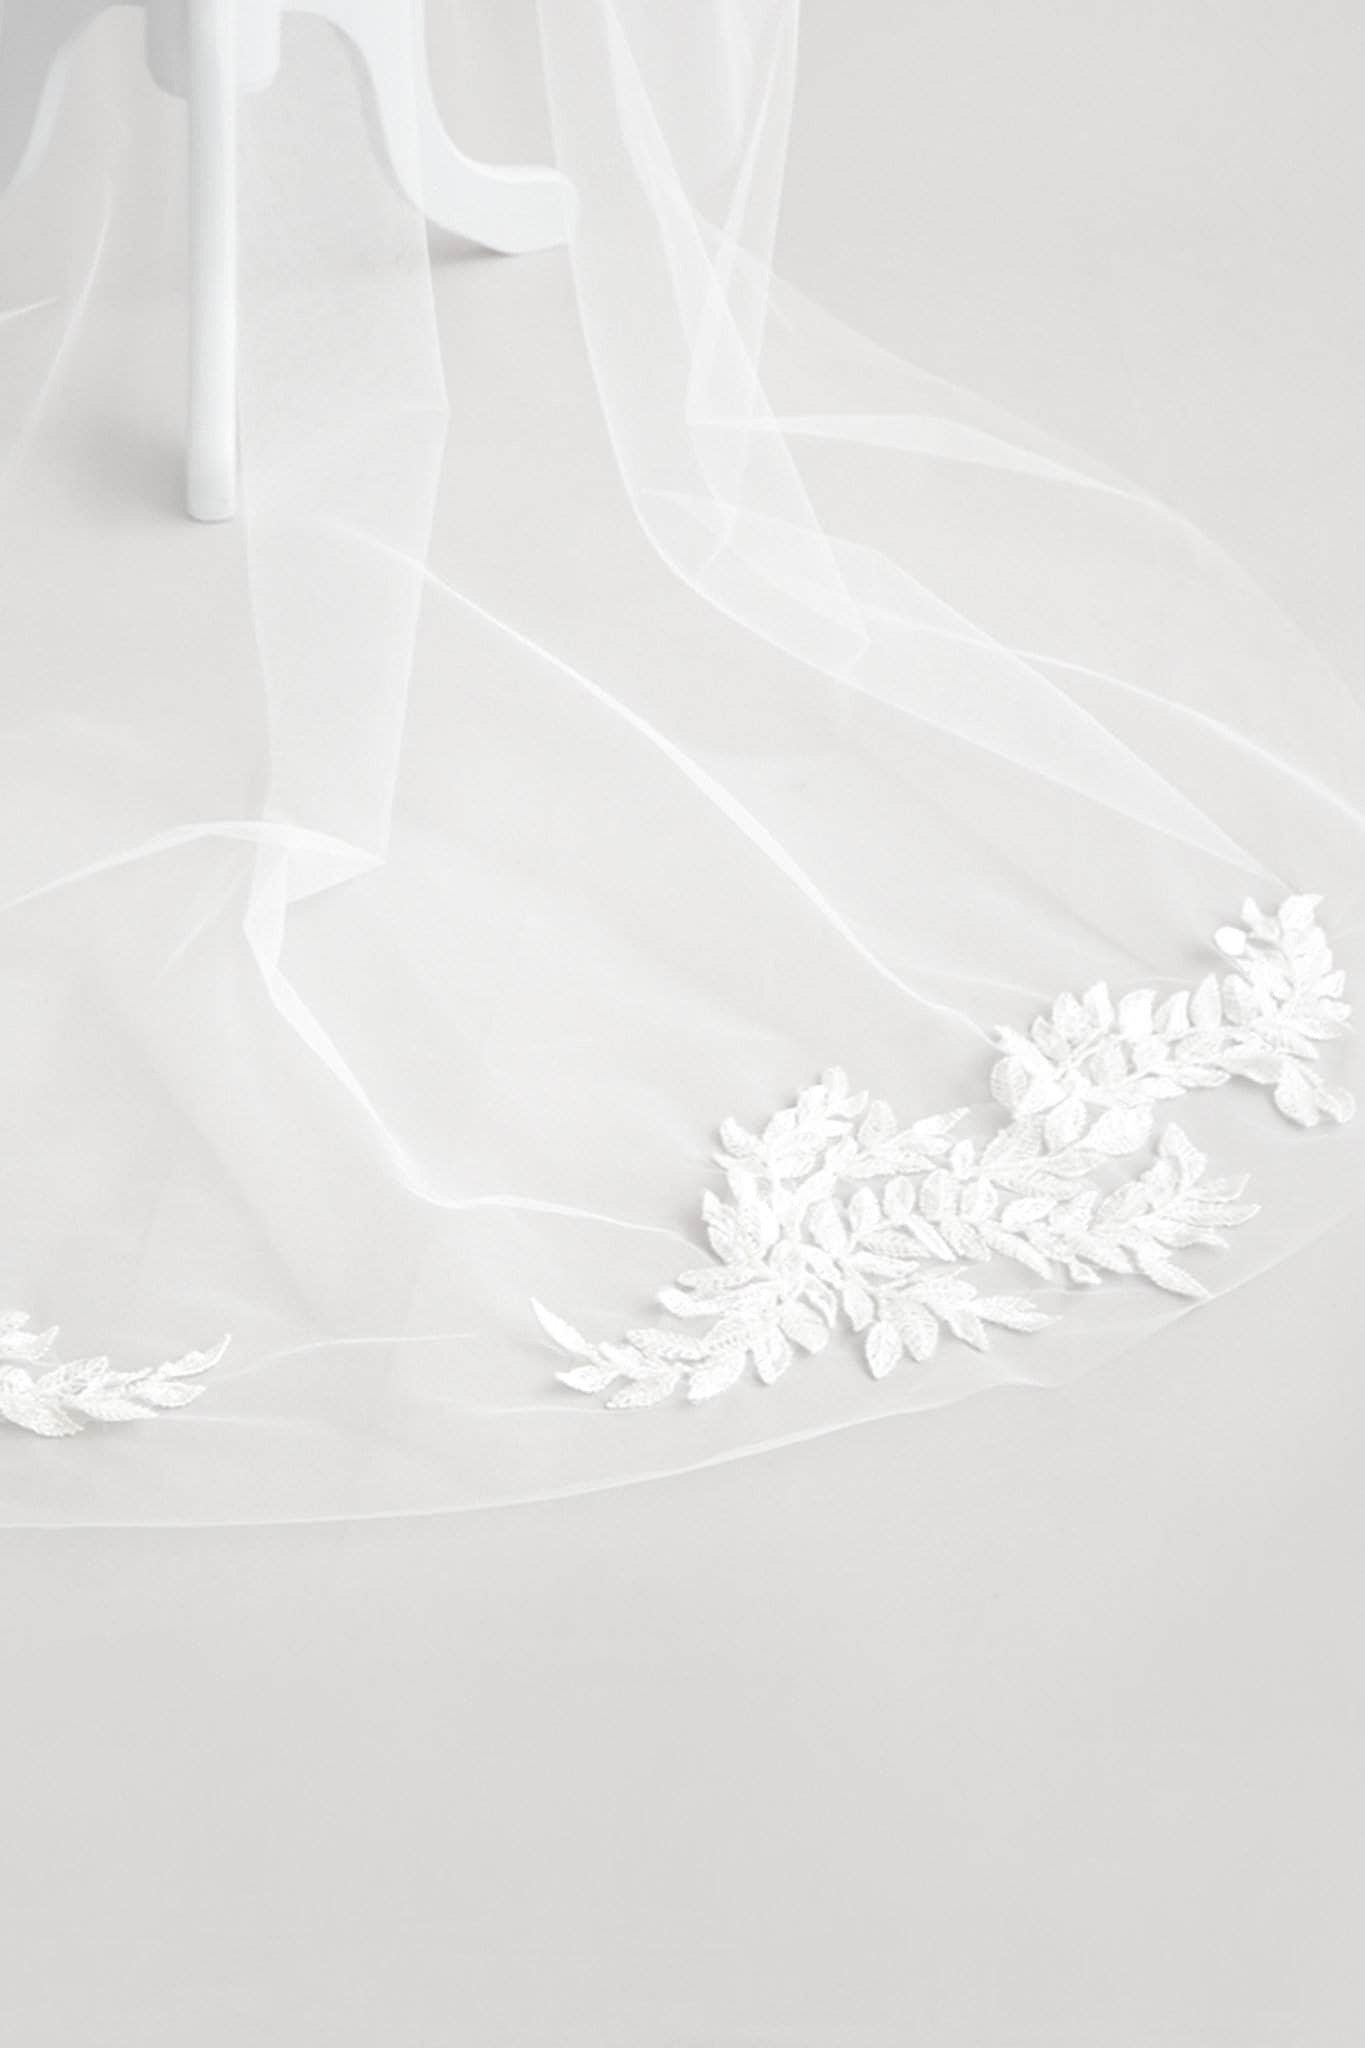 Beaded Leaf Motif Barely There Wedding Veil - 'Elder' - Britten Weddings